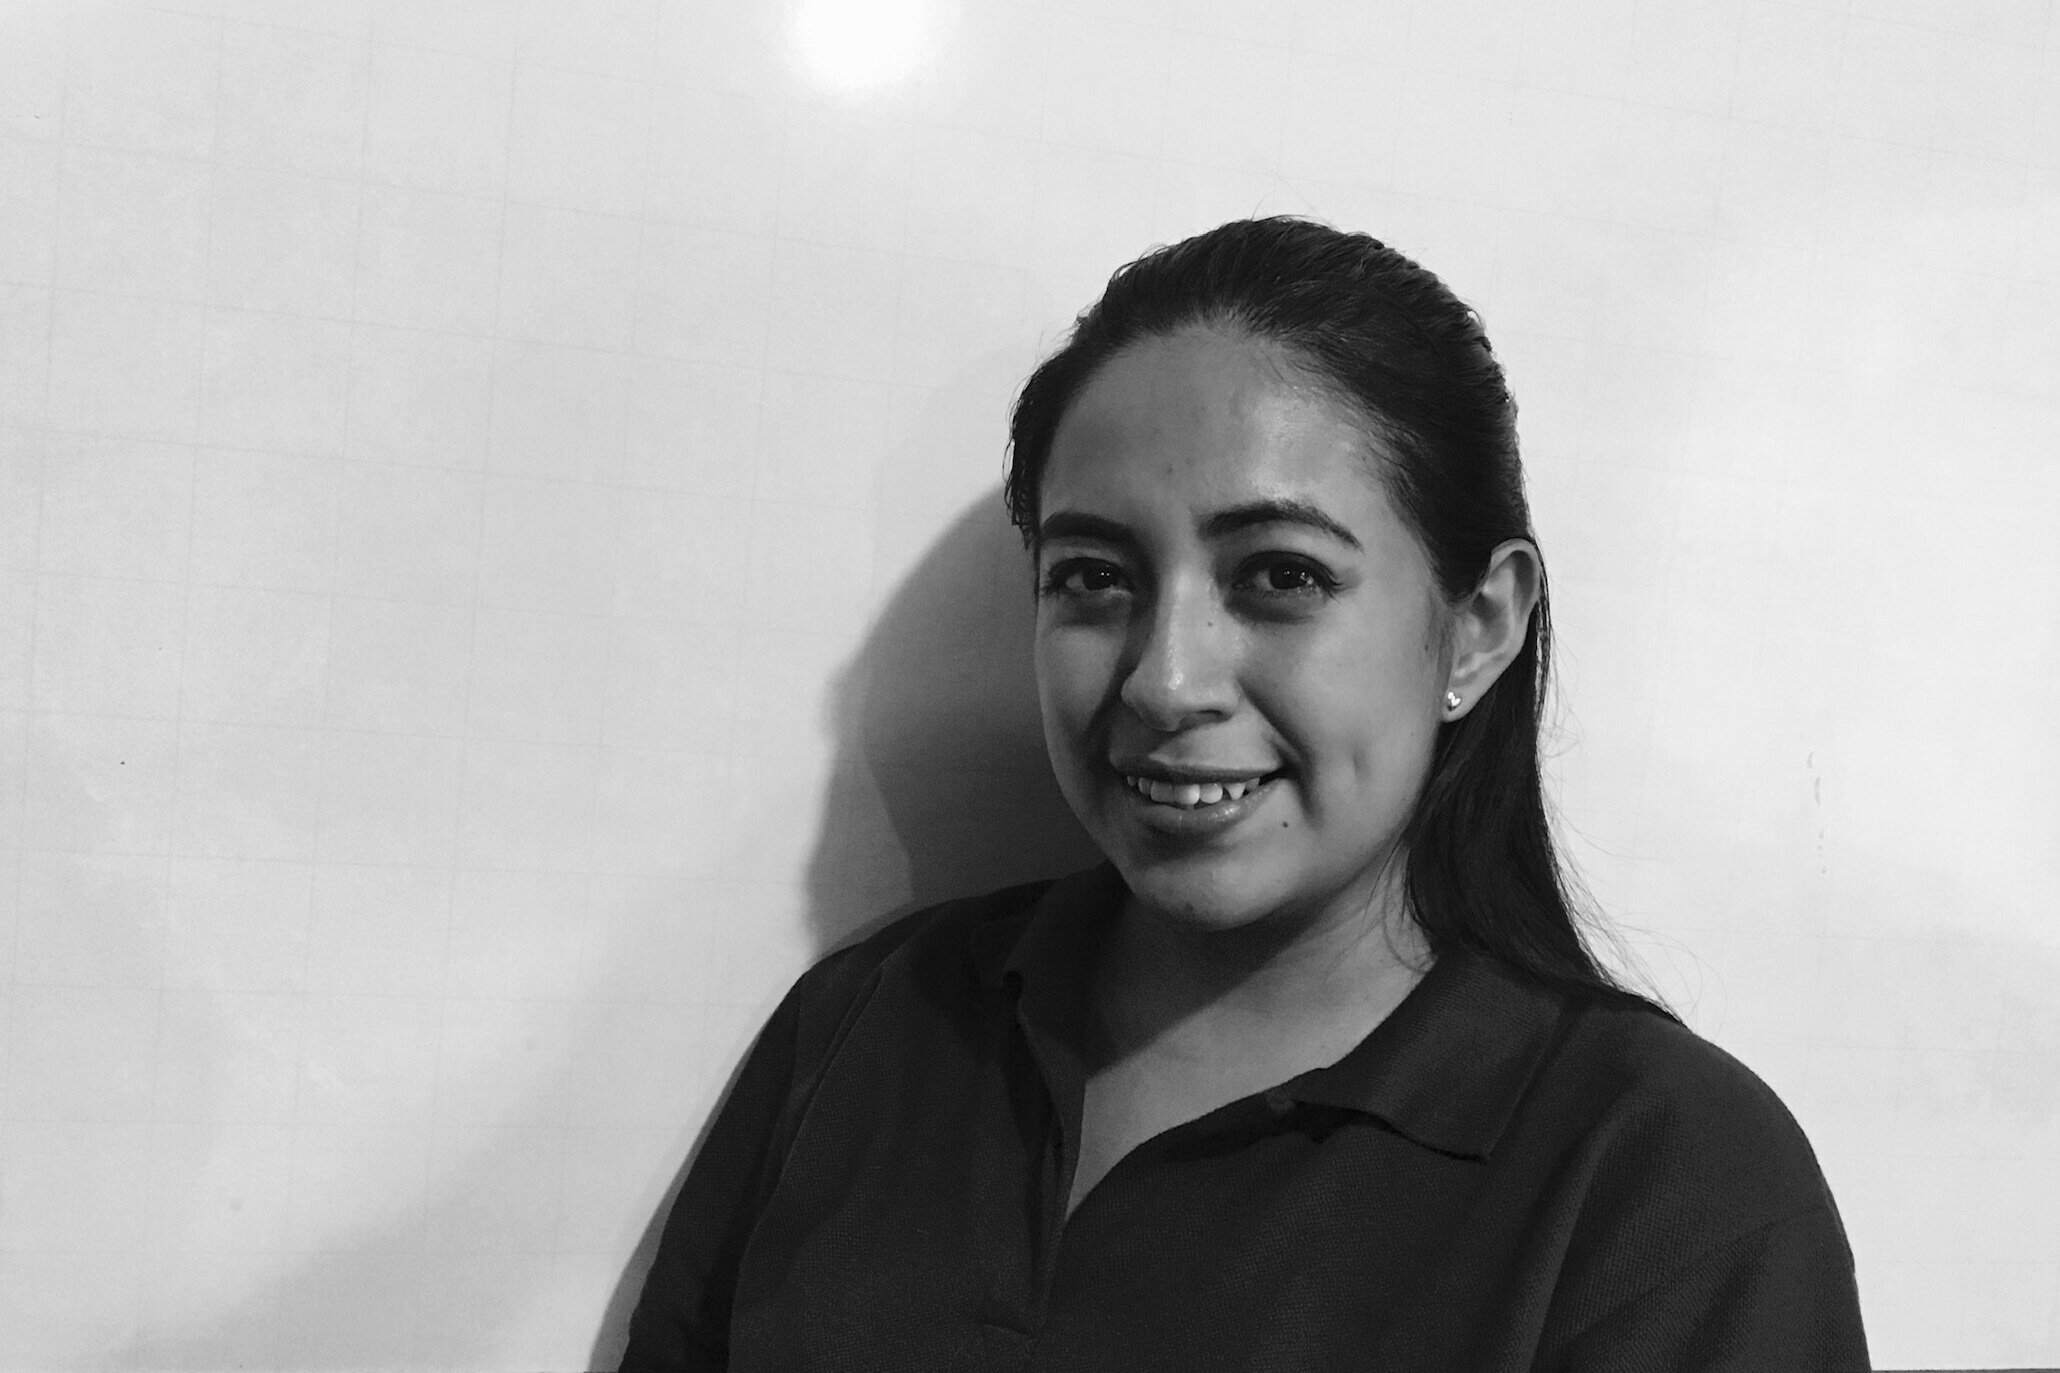 Valeria Freire - Sales | since 2017Vale started working with us as an intern. Now she is in charge of all commercial transactions. Vale is detail oriented, hardworking and diligent and is our shipping genius! She manages to plan all of our export logistics in a timely manner to countries all over the world. When she is not figuring out how to get a chili container from one location to the next, she likes to watch movies, spend time with her family, and dance.